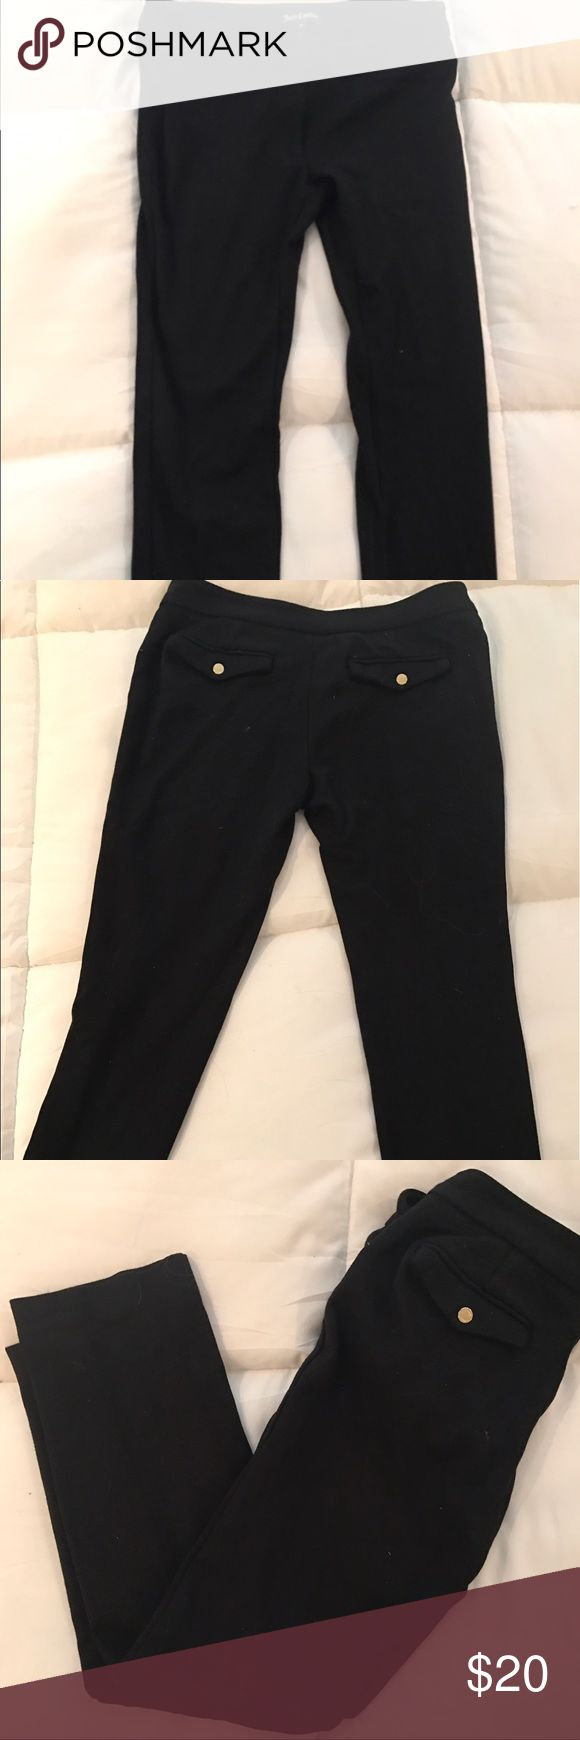 Juicy Couture Black Pants Juicy Couture Black Formal Pants. Only worn a couple of times so they are still in wonderful condition. They are really comfy but still look formal. They come down to right above my ankle bone. (First 2 pictures are of a similar pair from the same brand) Juicy Couture Pants Leggings